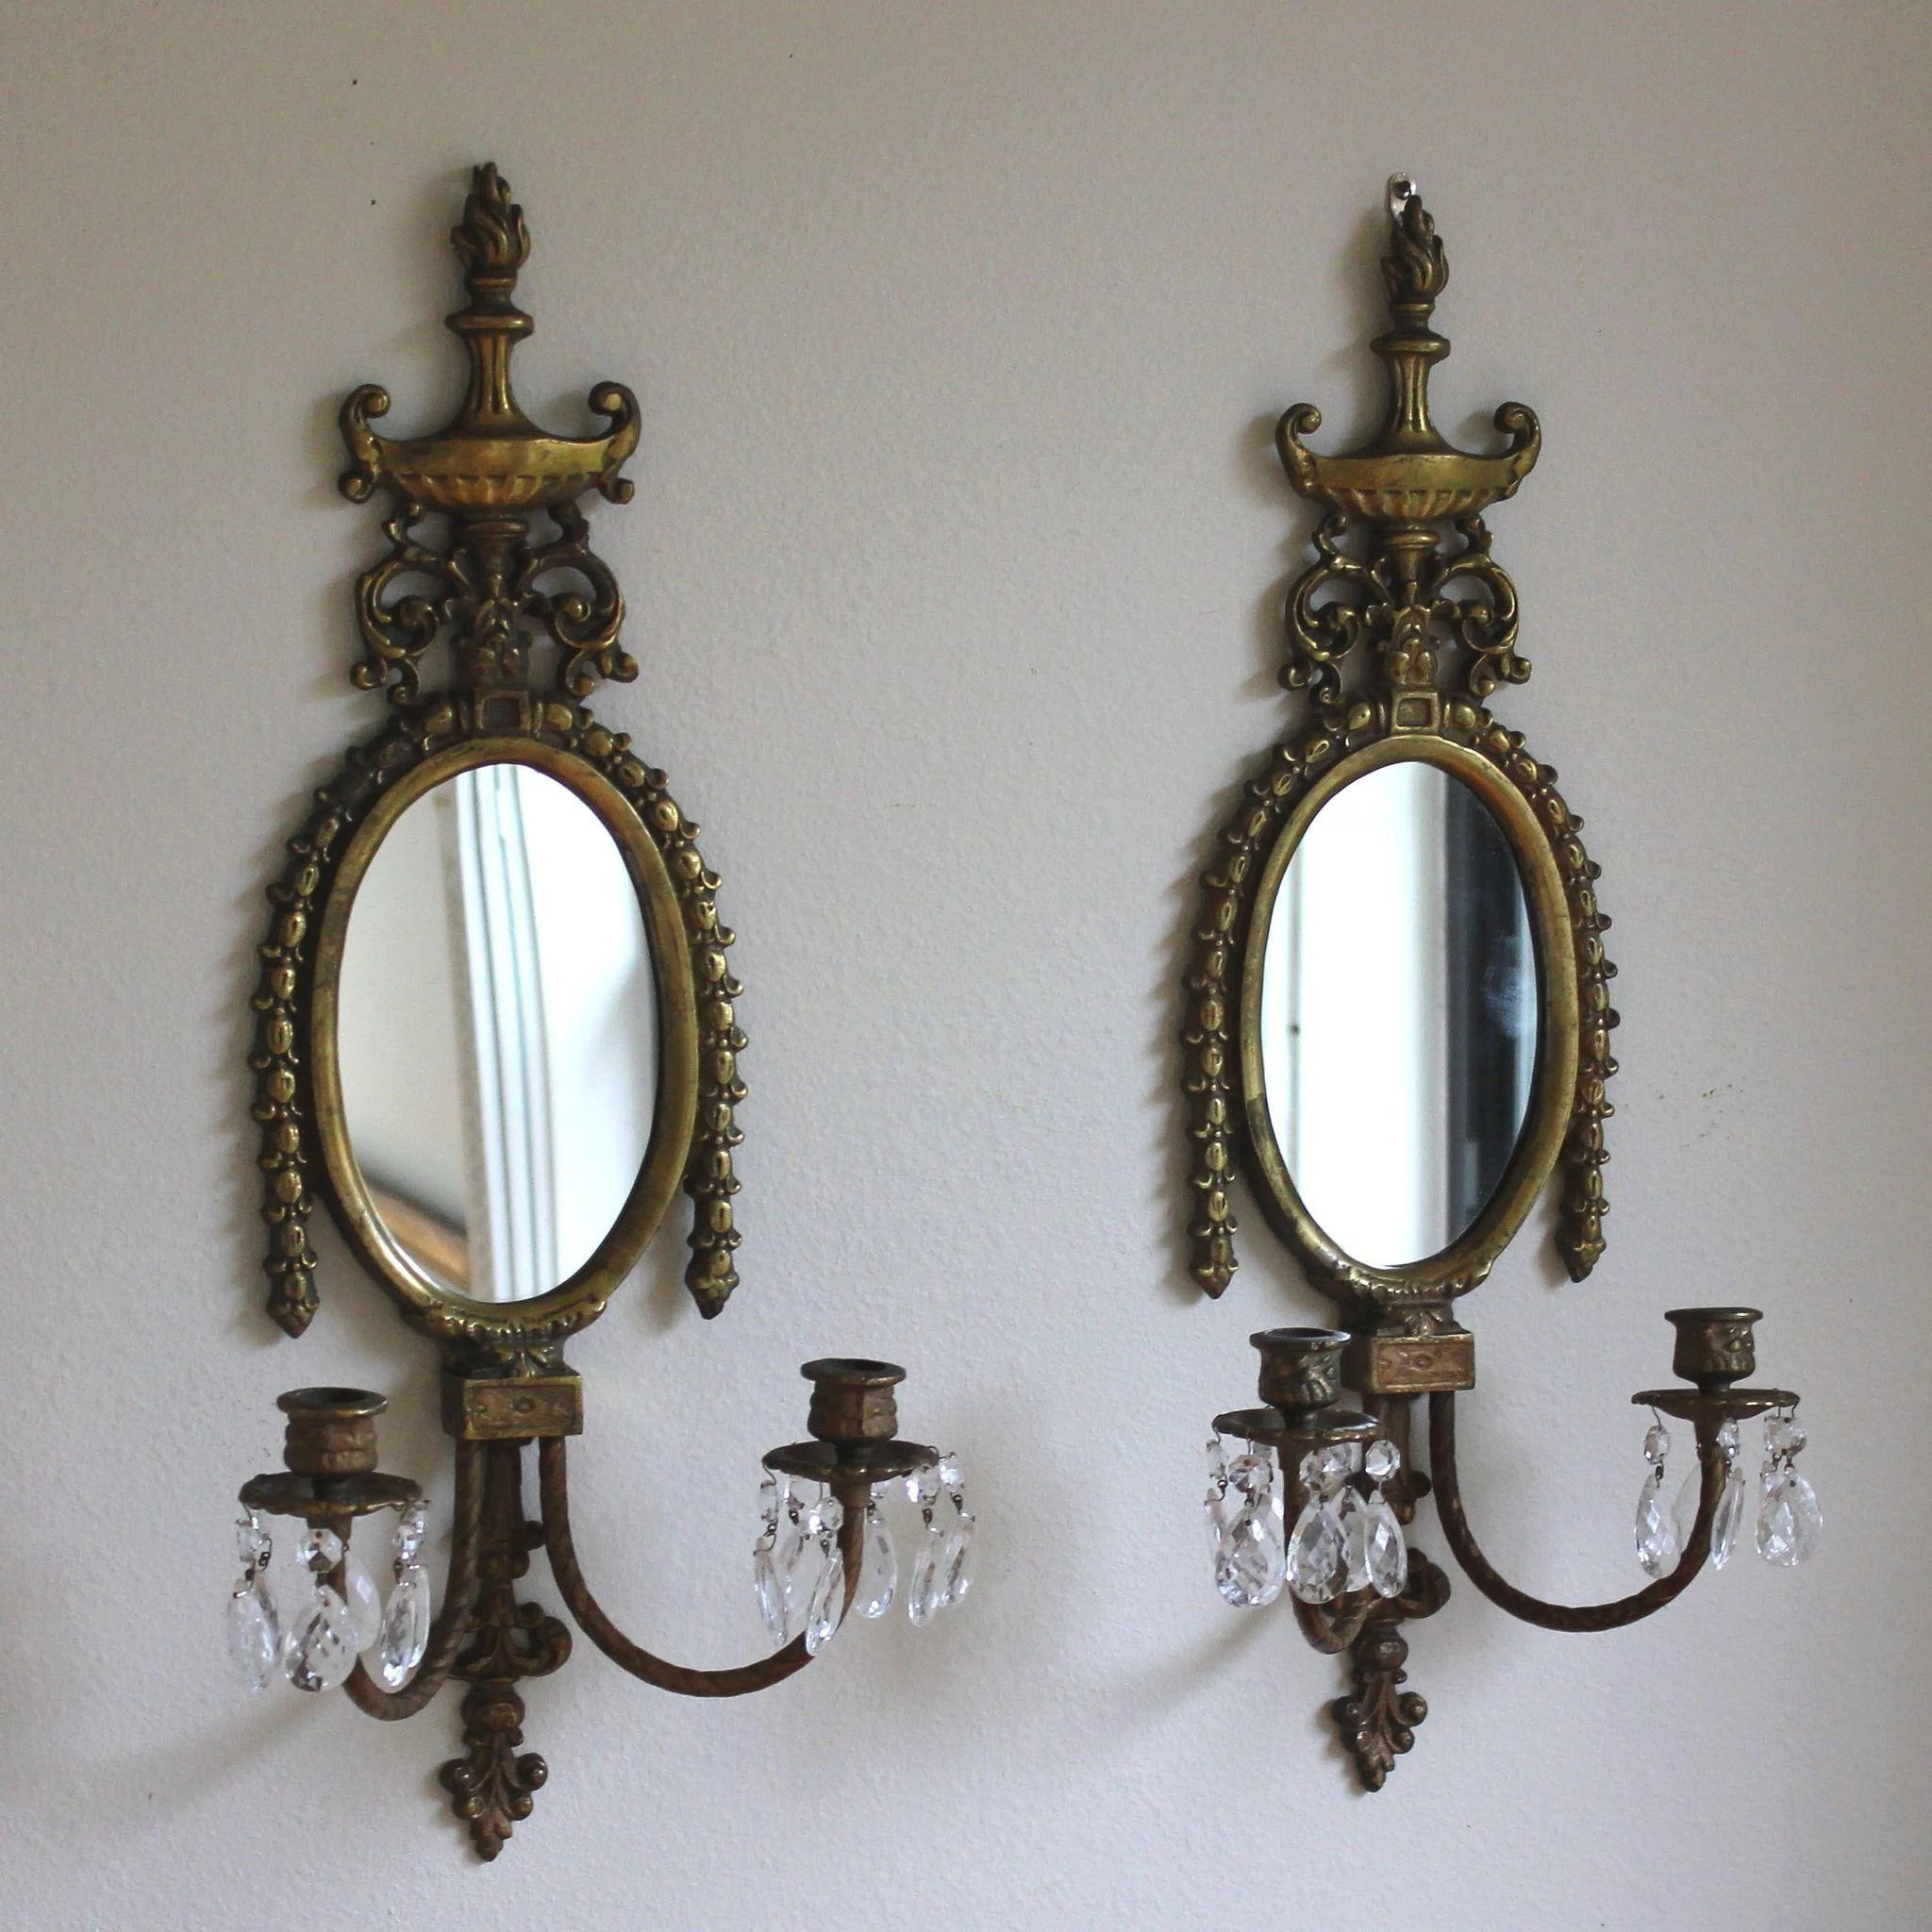 Two Antique Bronze Candle Sconces with Crystals : Juliet ...